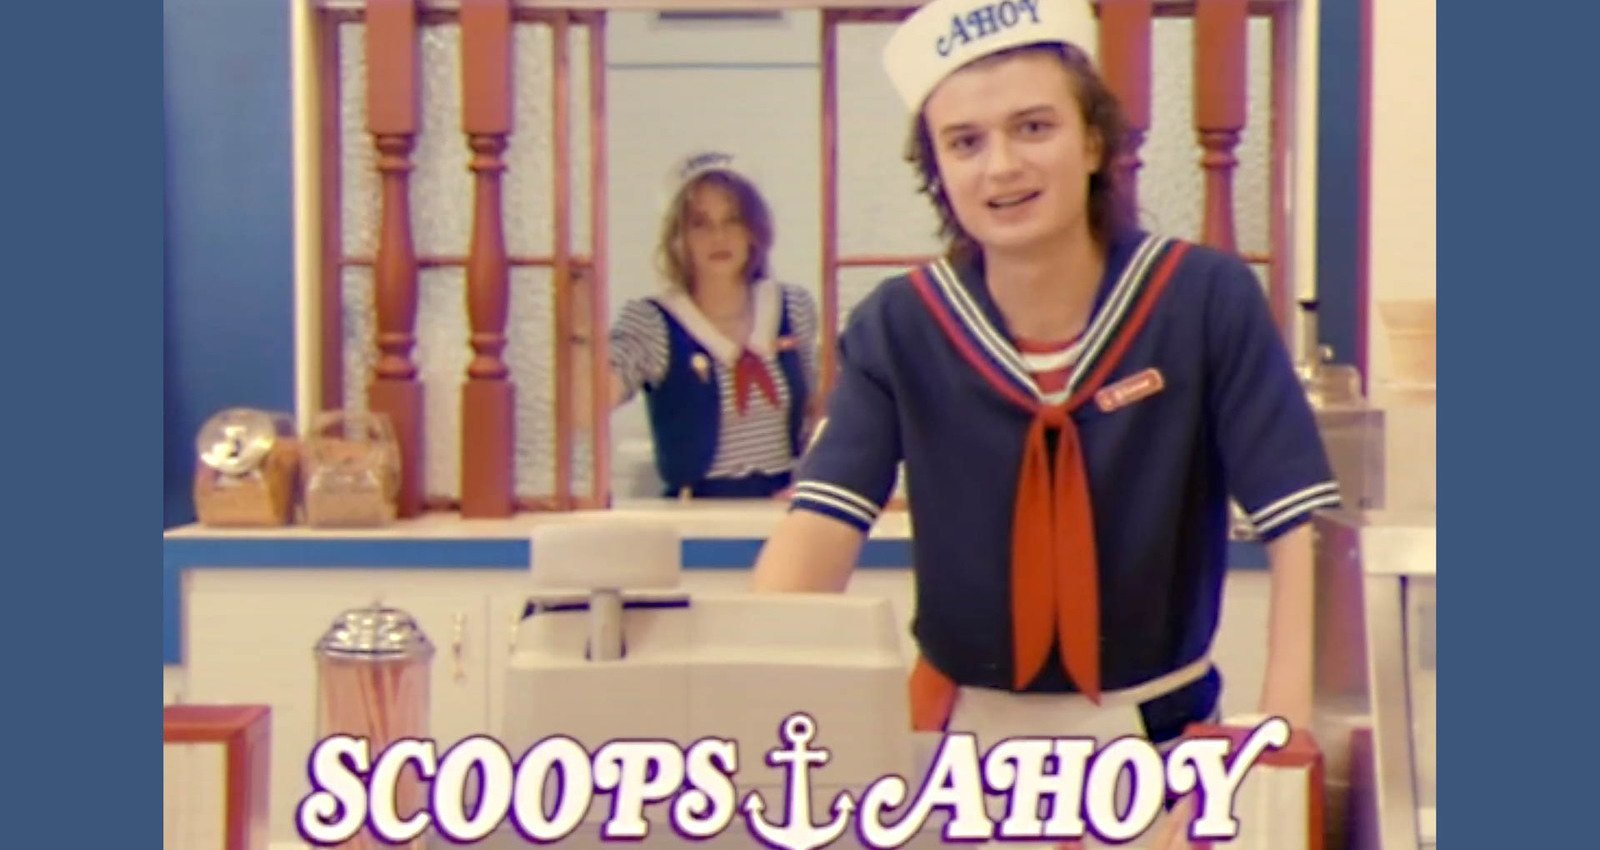 Scoops Ahoy: Operation Scoop Snoop